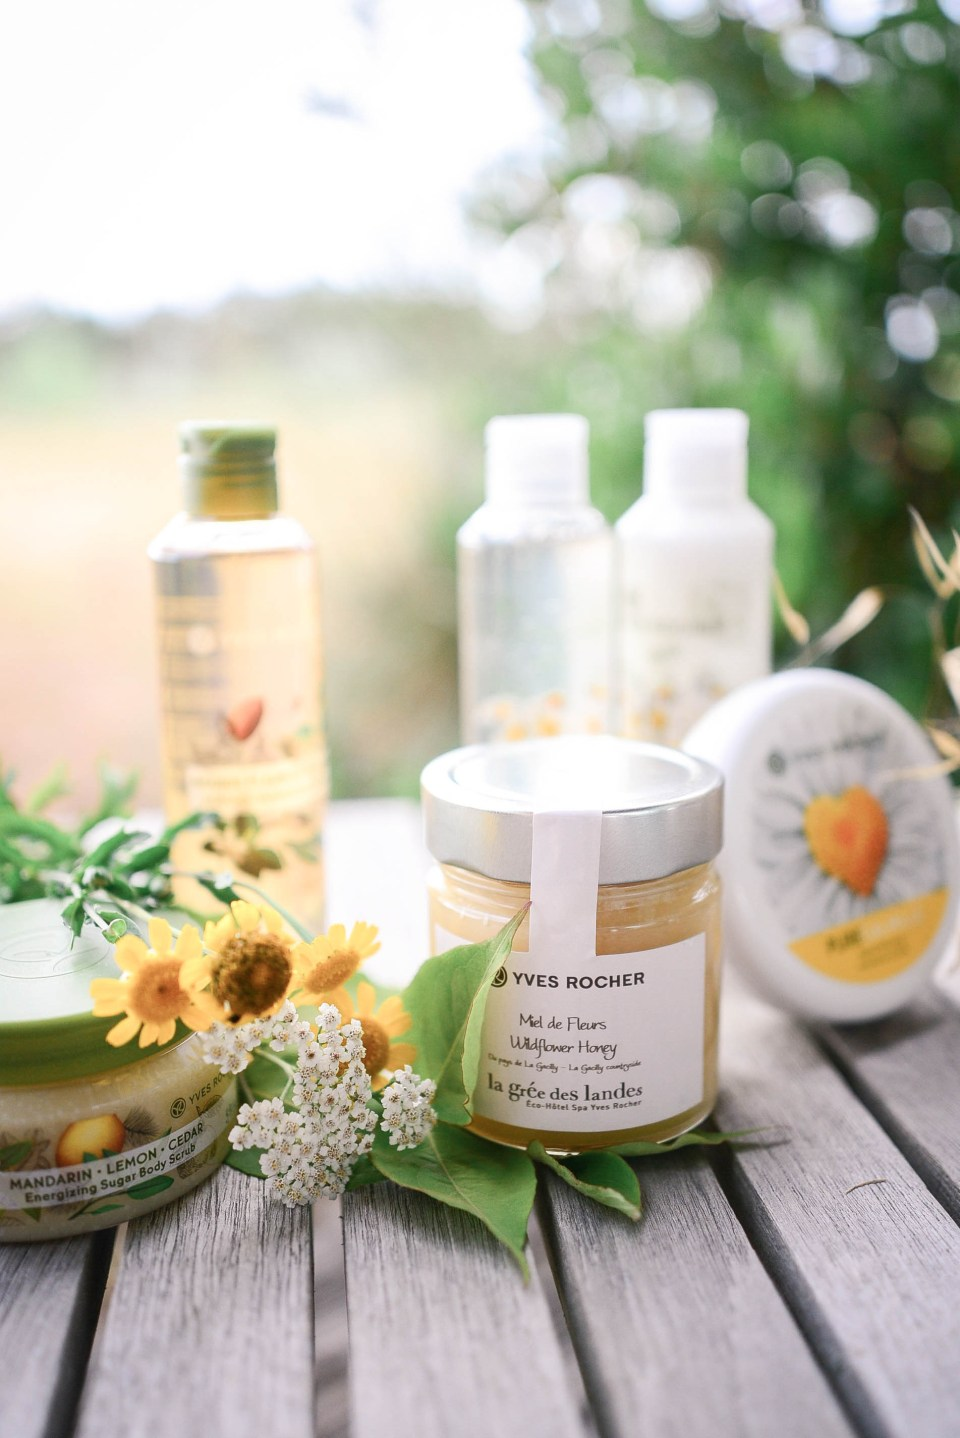 Yves Rocher products in La Gacilly